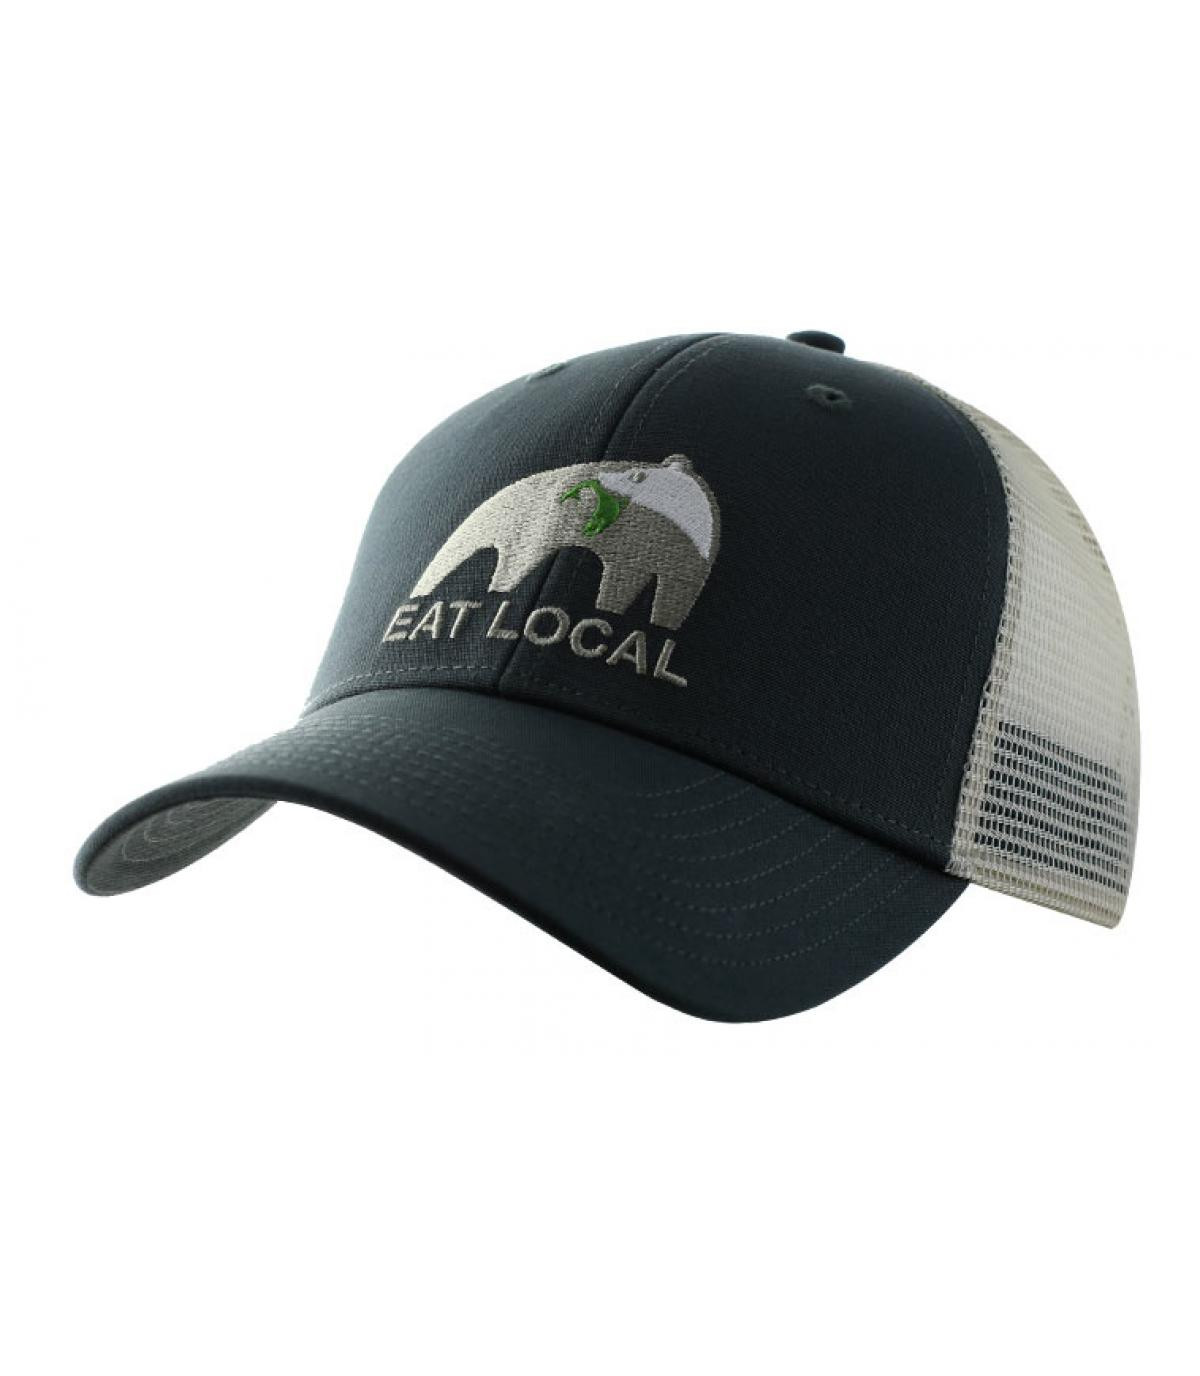 39c1bf3e5a Patagonia Eat Local cap - Eat Local Trucker forge grey by Patagonia ...